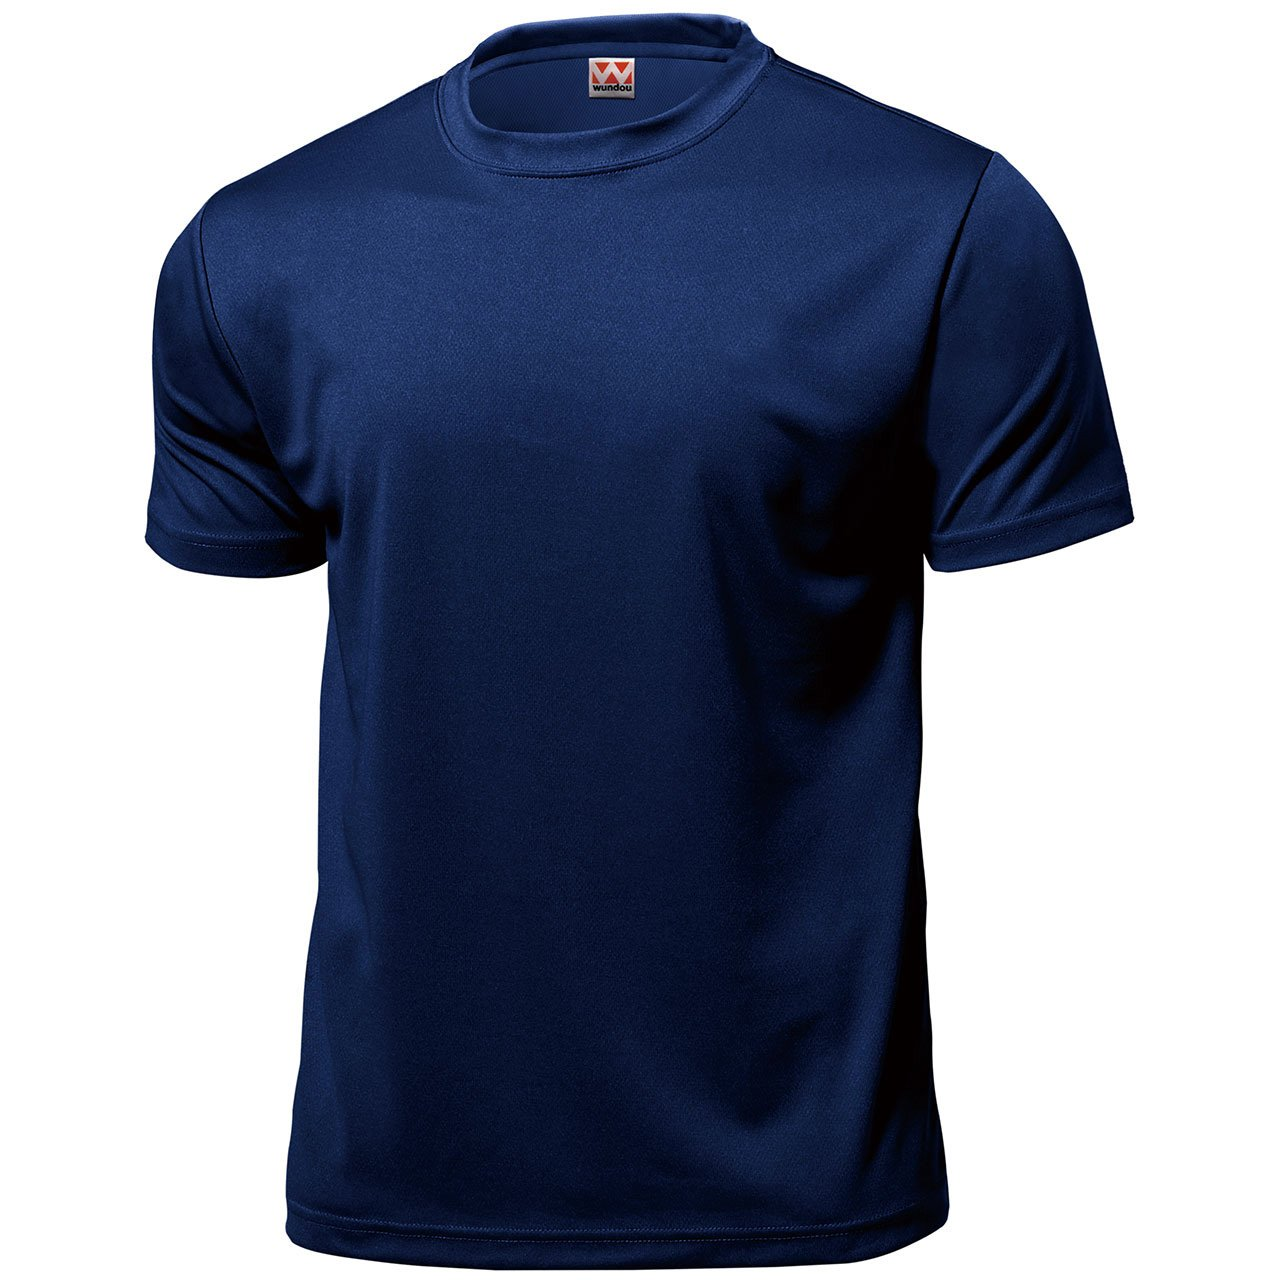 Wundou Boy's Dry light Sports T-shirts P330 150CM(59'') Navy